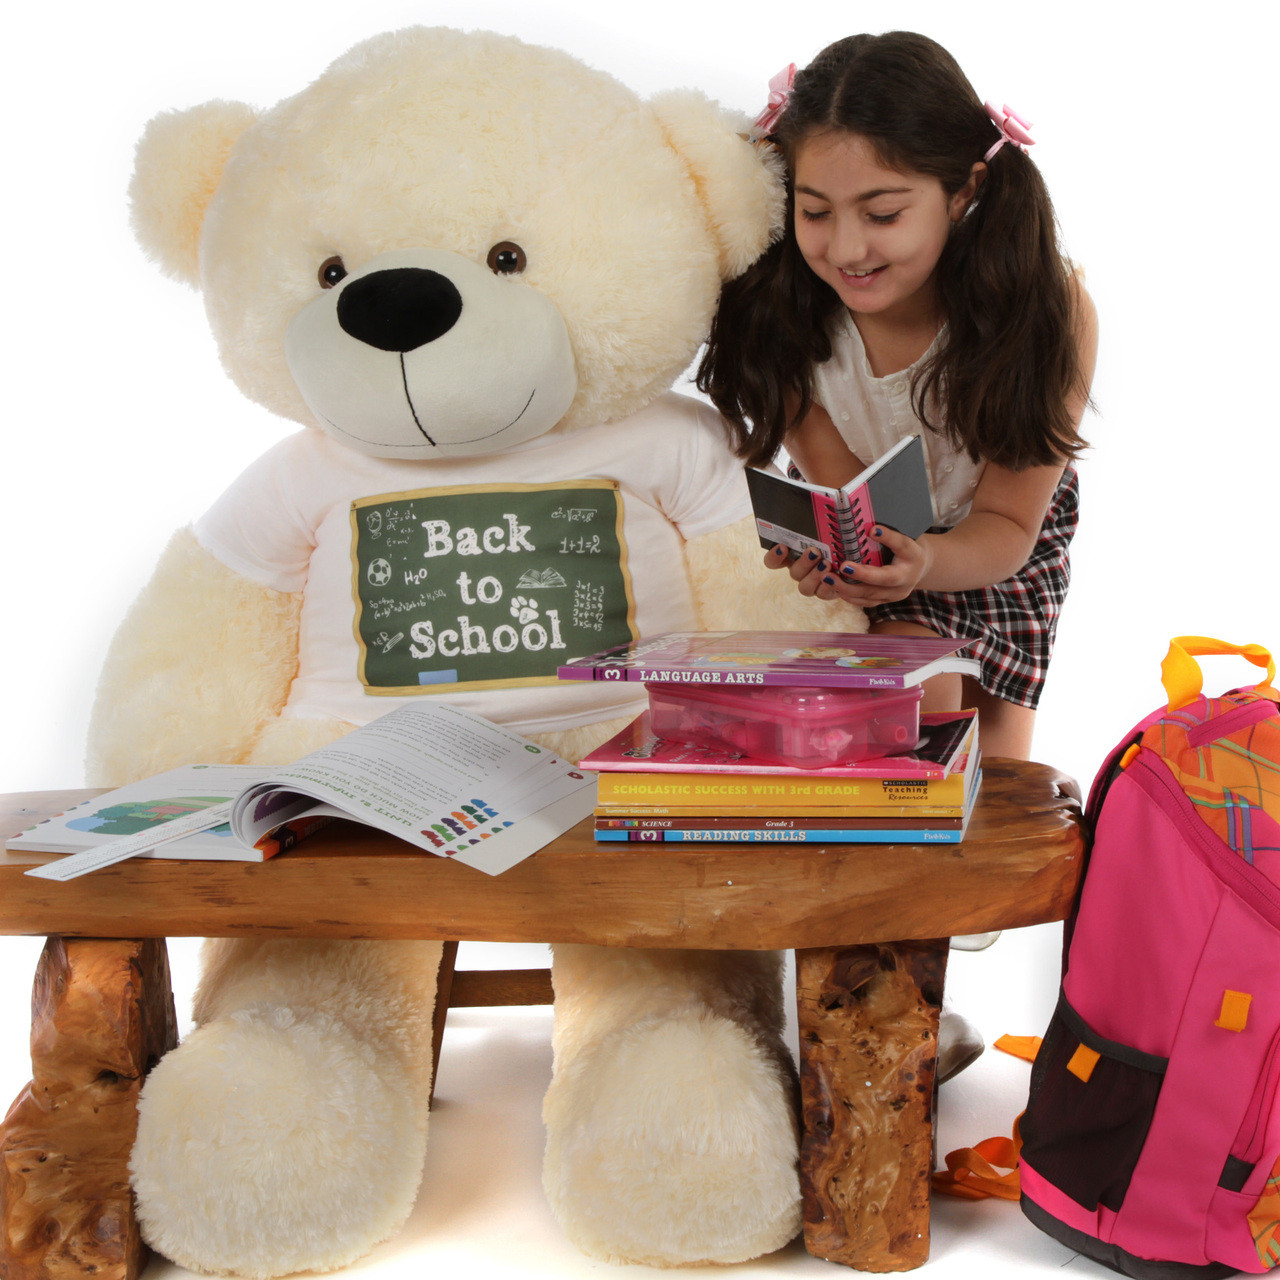 Back to School Huge Teddy Bear